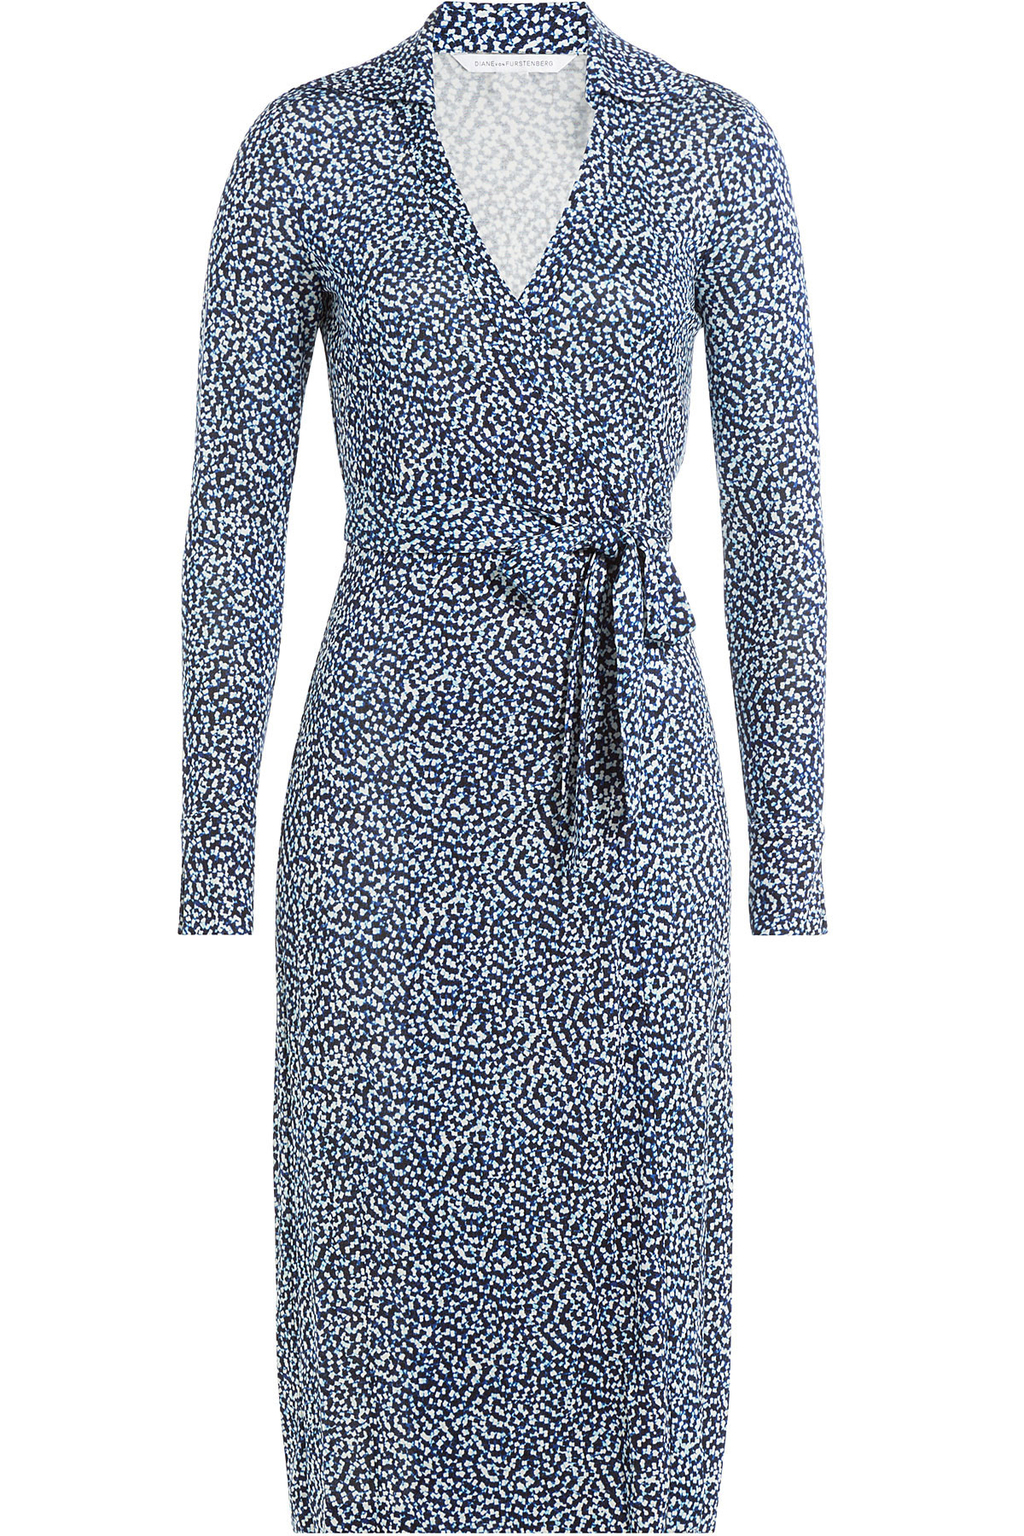 Printed Silk Wrap Dress Blue - style: faux wrap/wrap; neckline: shirt collar/peter pan/zip with opening; waist detail: belted waist/tie at waist/drawstring; predominant colour: denim; occasions: casual, work, creative work; length: on the knee; fit: body skimming; fibres: silk - 100%; sleeve length: long sleeve; sleeve style: standard; pattern type: fabric; pattern: patterned/print; texture group: jersey - stretchy/drapey; season: a/w 2016; wardrobe: highlight